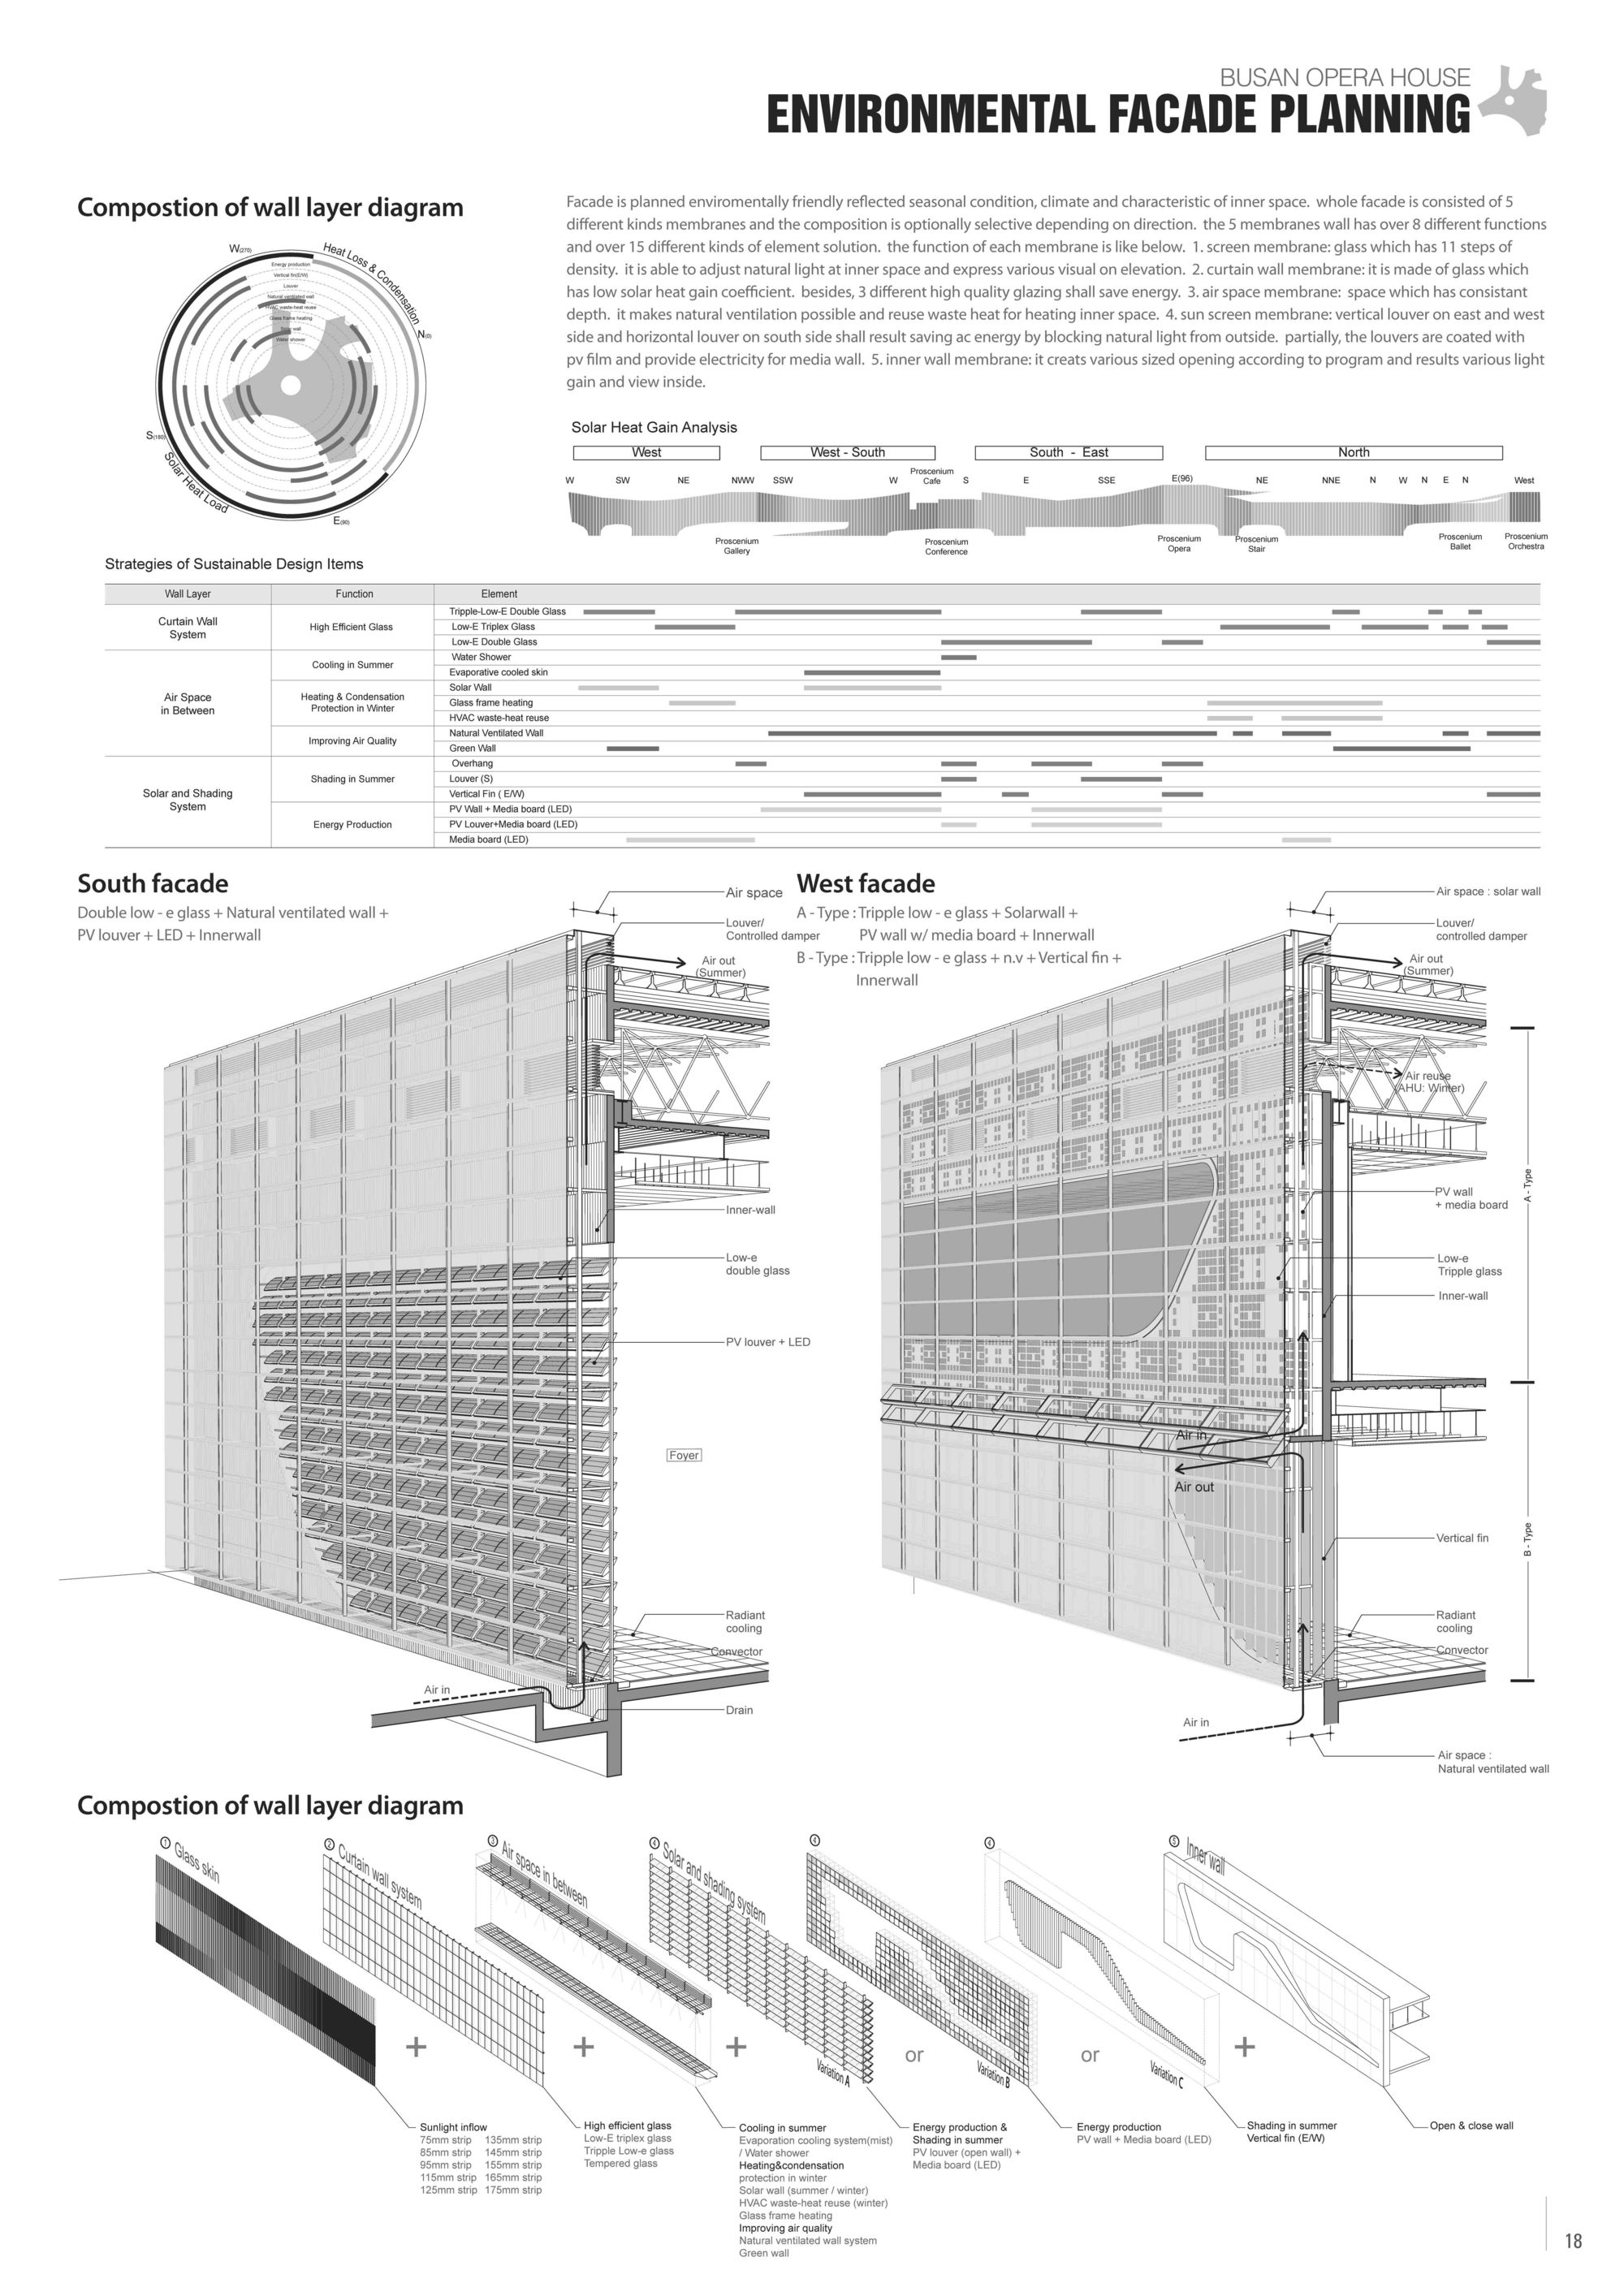 Gallery of Busan Opera House Second Prize Winning Proposal ...